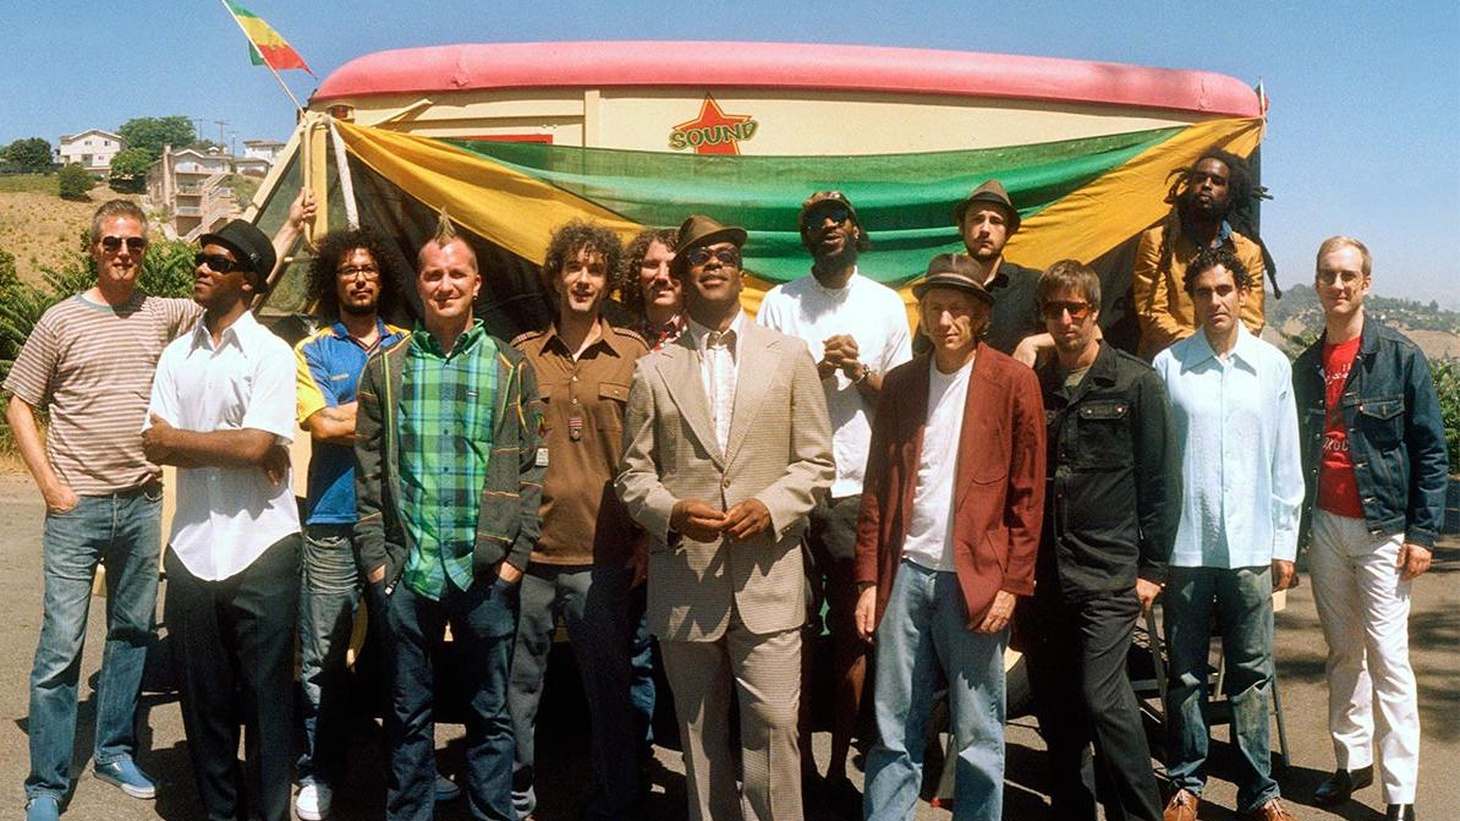 LA-based reggae outfit The Lions roar into KCRW studios for a live set...